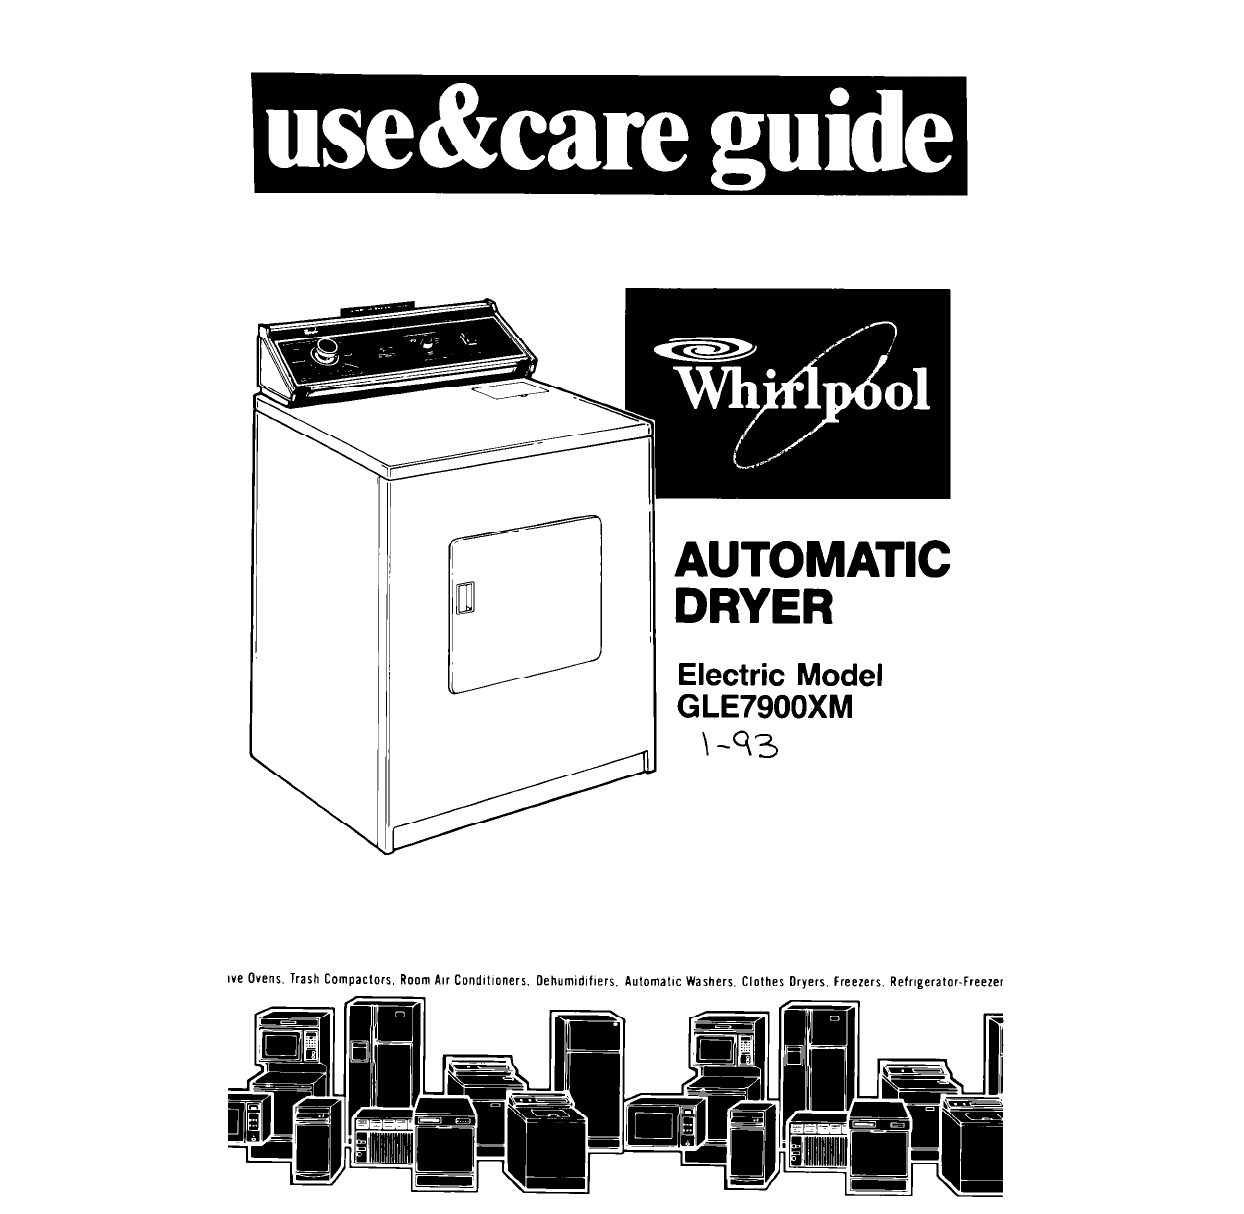 Whirlpool Clothes Dryer GLE7900XM User Guide